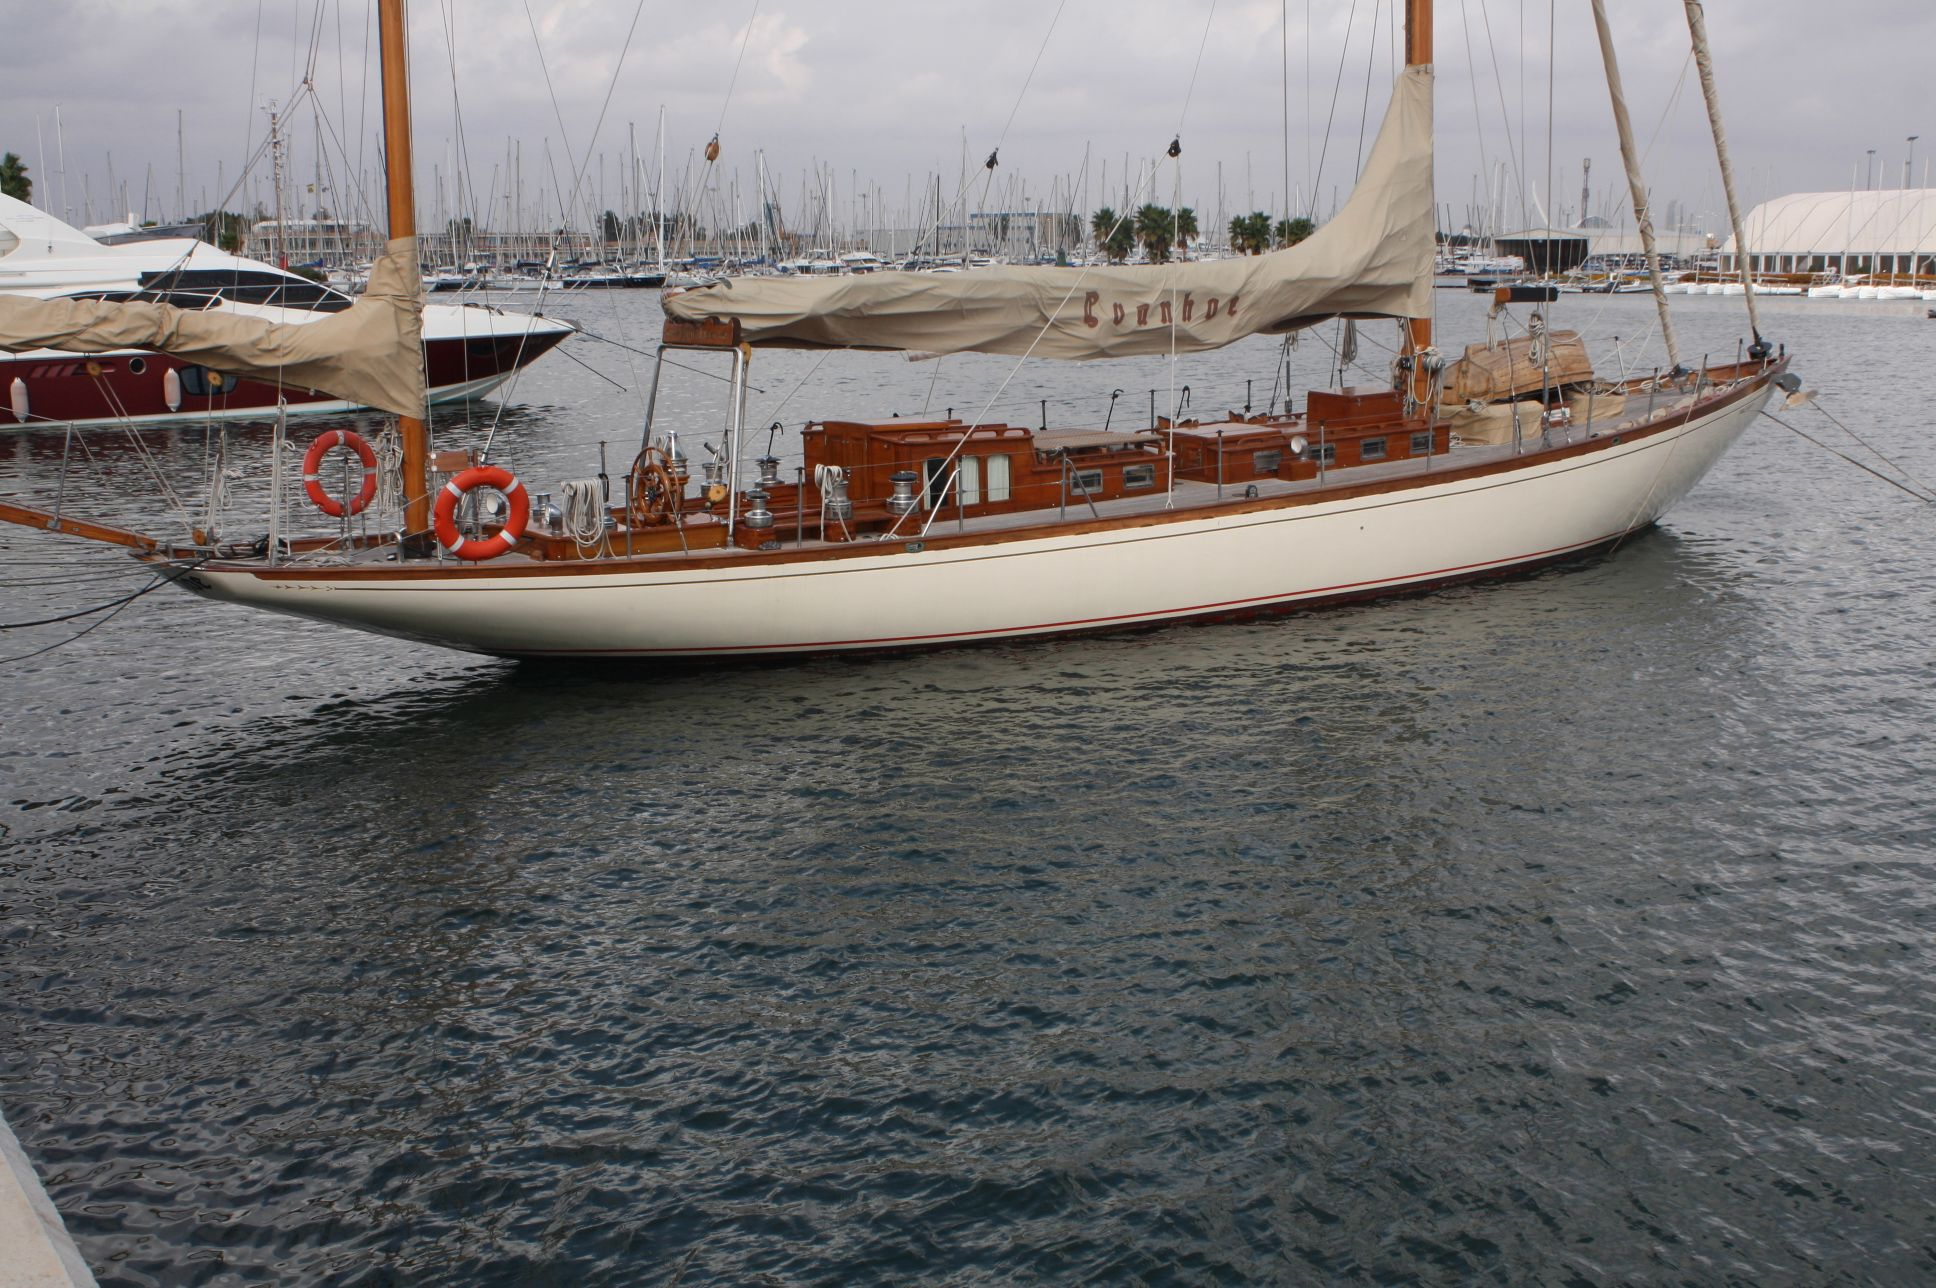 1938 Classic Tore Holm Ivanhoe Sail Boat For Sale Www